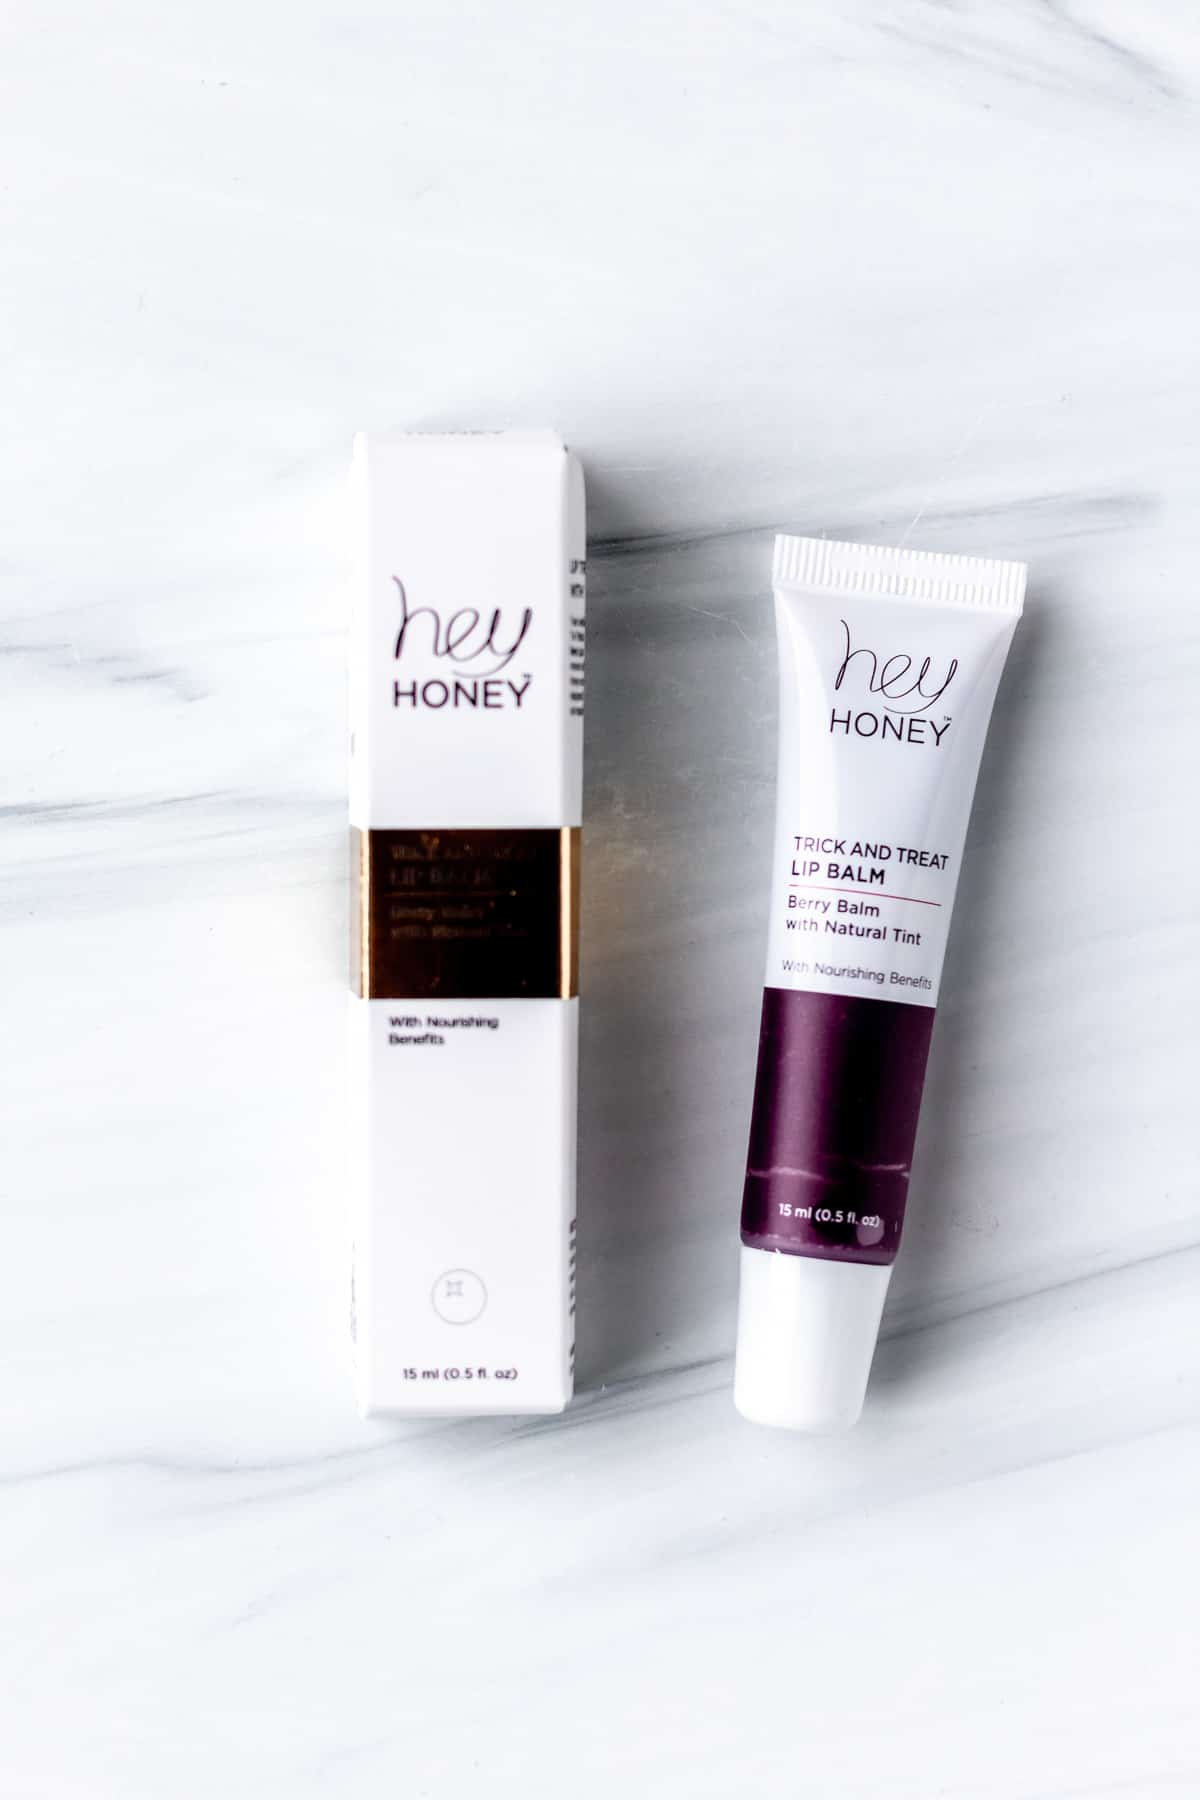 Hey Honey Trick and Treat Lip Balm in Berry Balm next to its box on a white background.